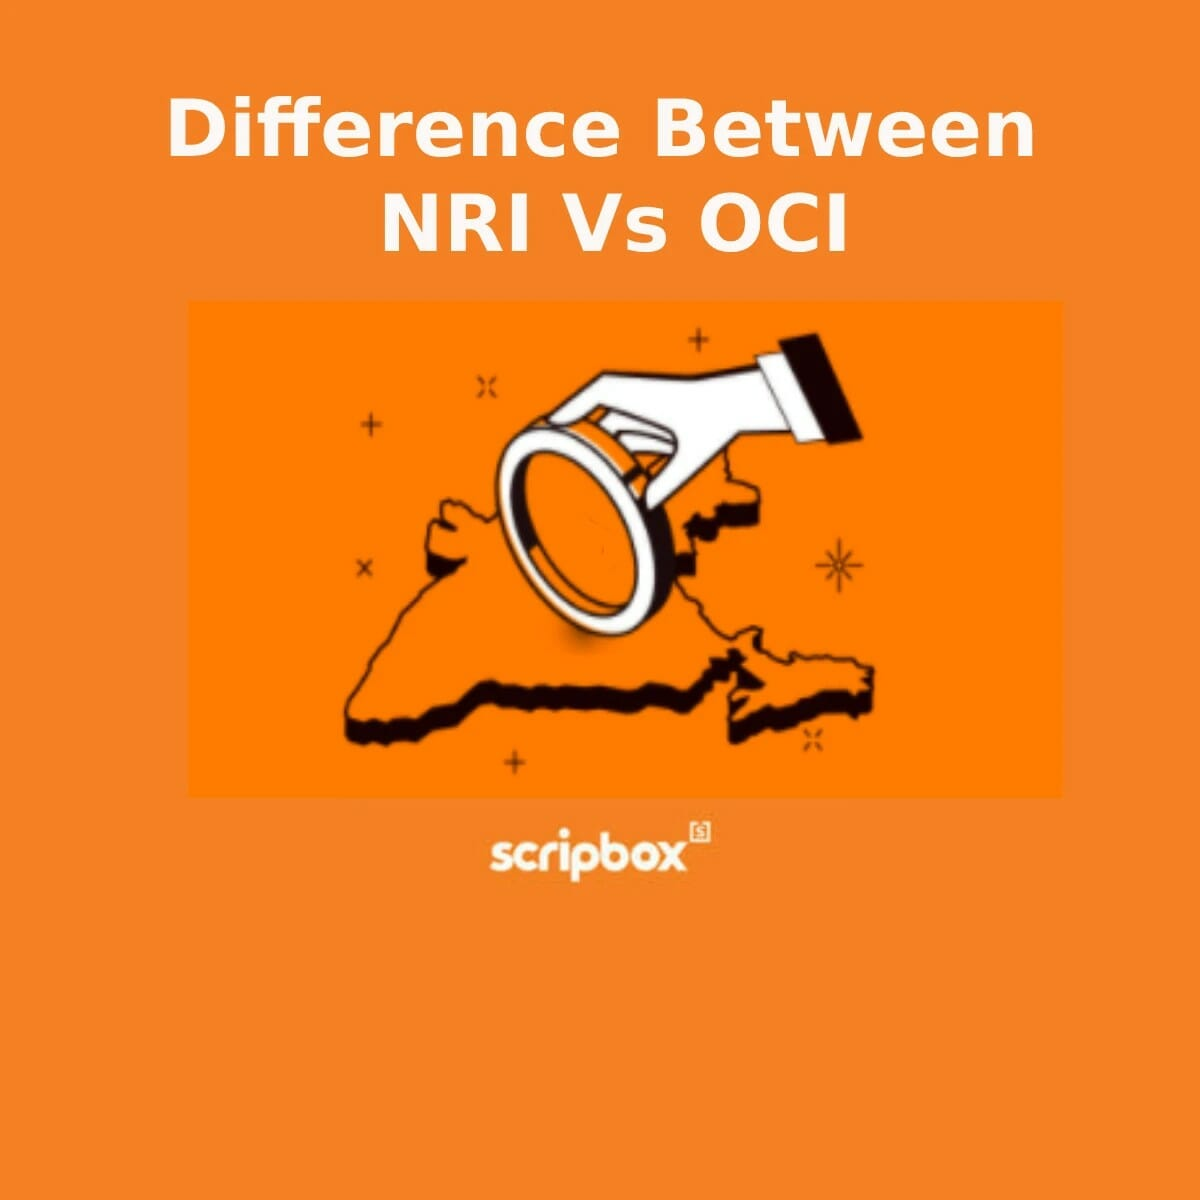 Difference between NRI Vs OCI